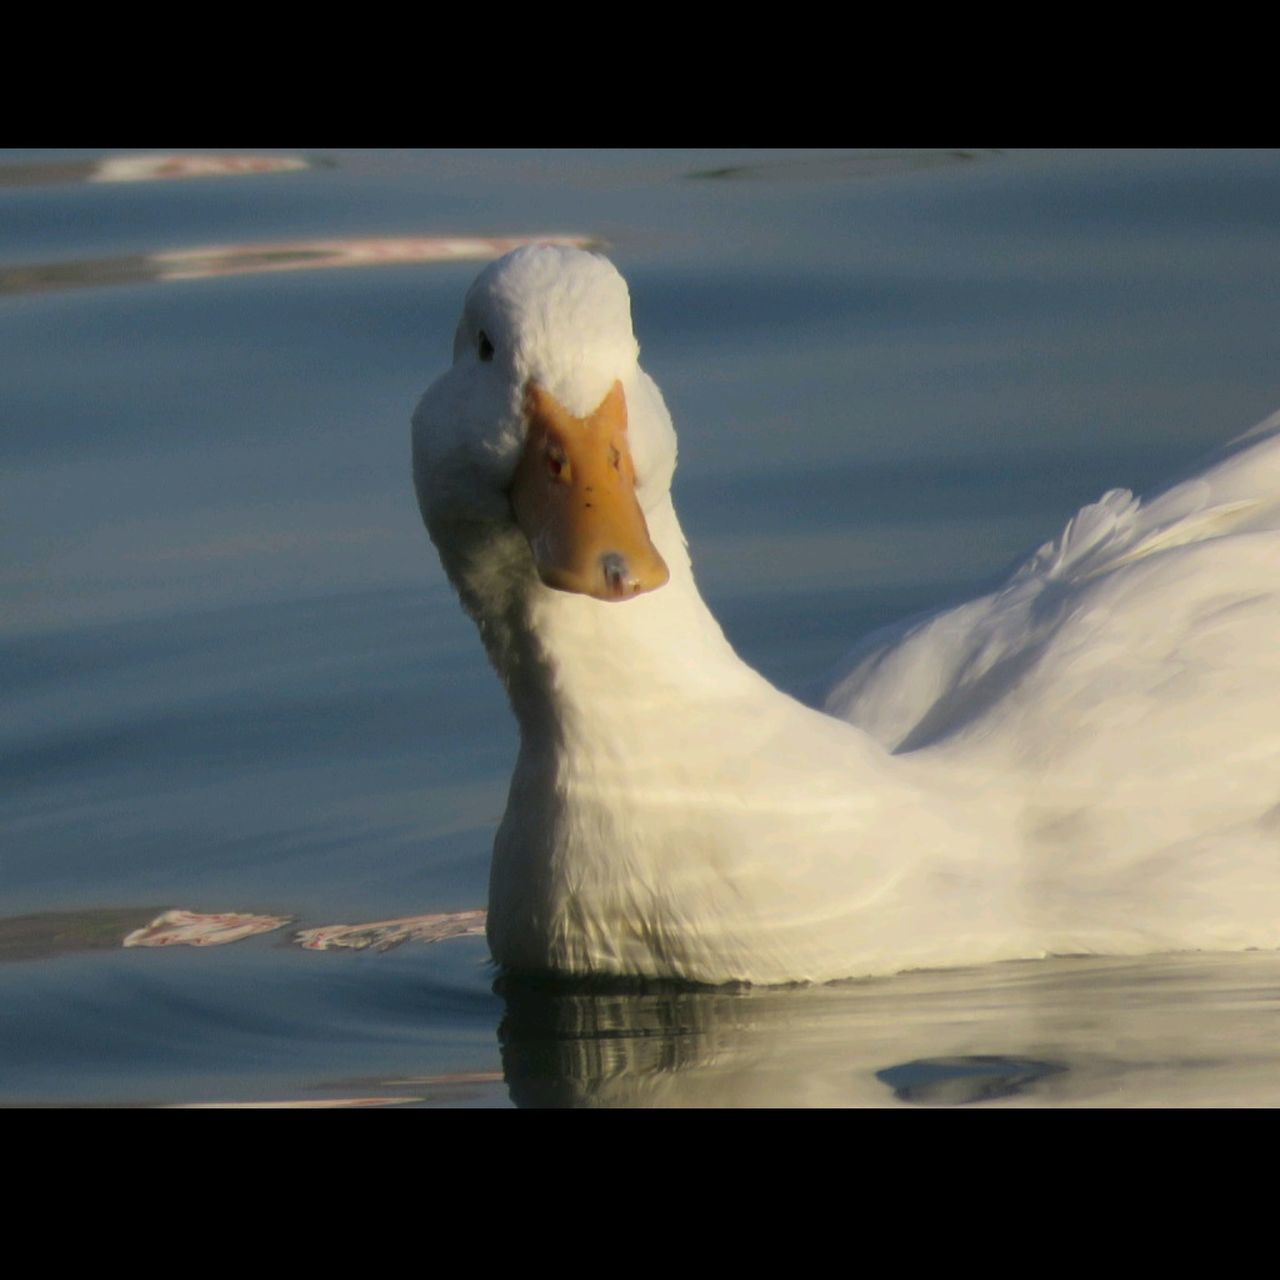 CLOSE-UP OF SWAN SWIMMING ON LAKE AGAINST SKY